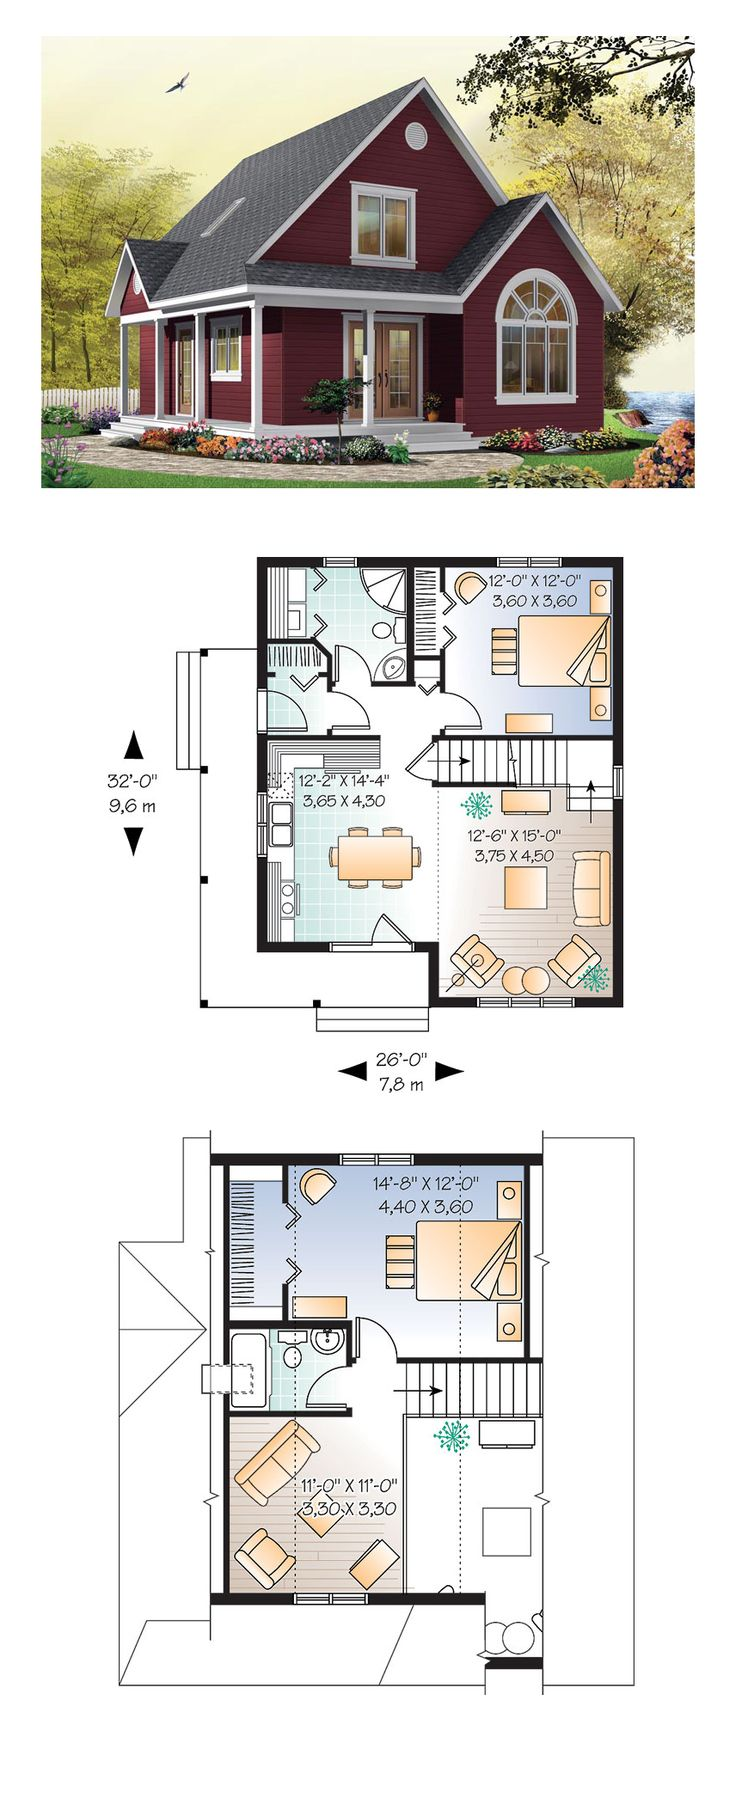 Best 25 small homes ideas on pinterest small home plans tiny cottage floor plans and dog - Small house plans ...